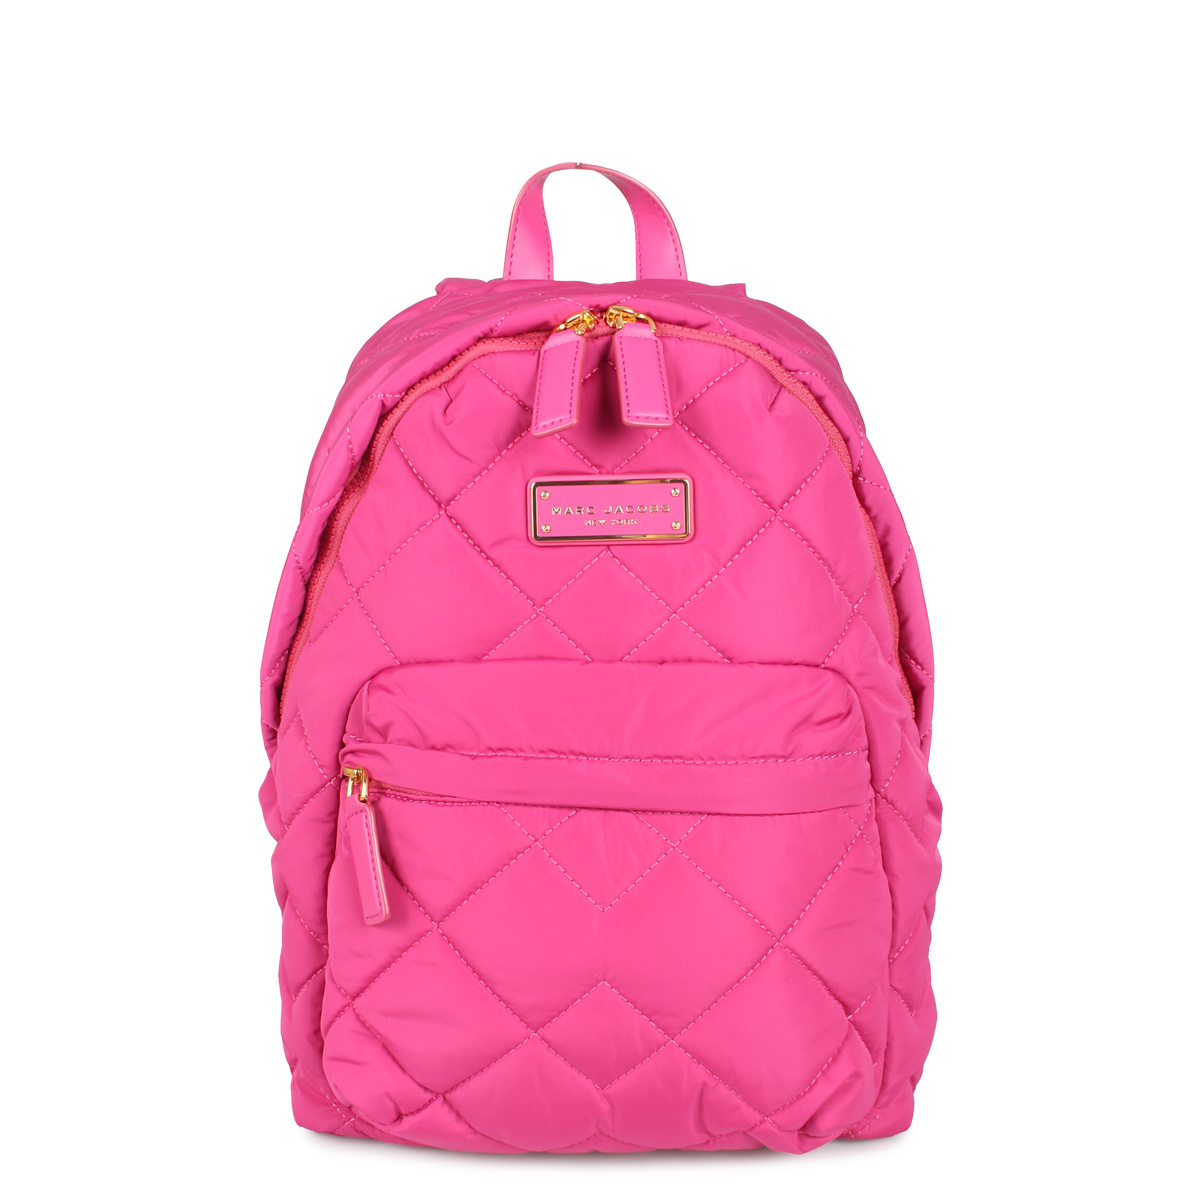 MARC JACOBS QUILTED BACKPACK マークジェイコブス リュック バッグ バックパック レディース ピンク M0011321-957 [4/27 新入荷]